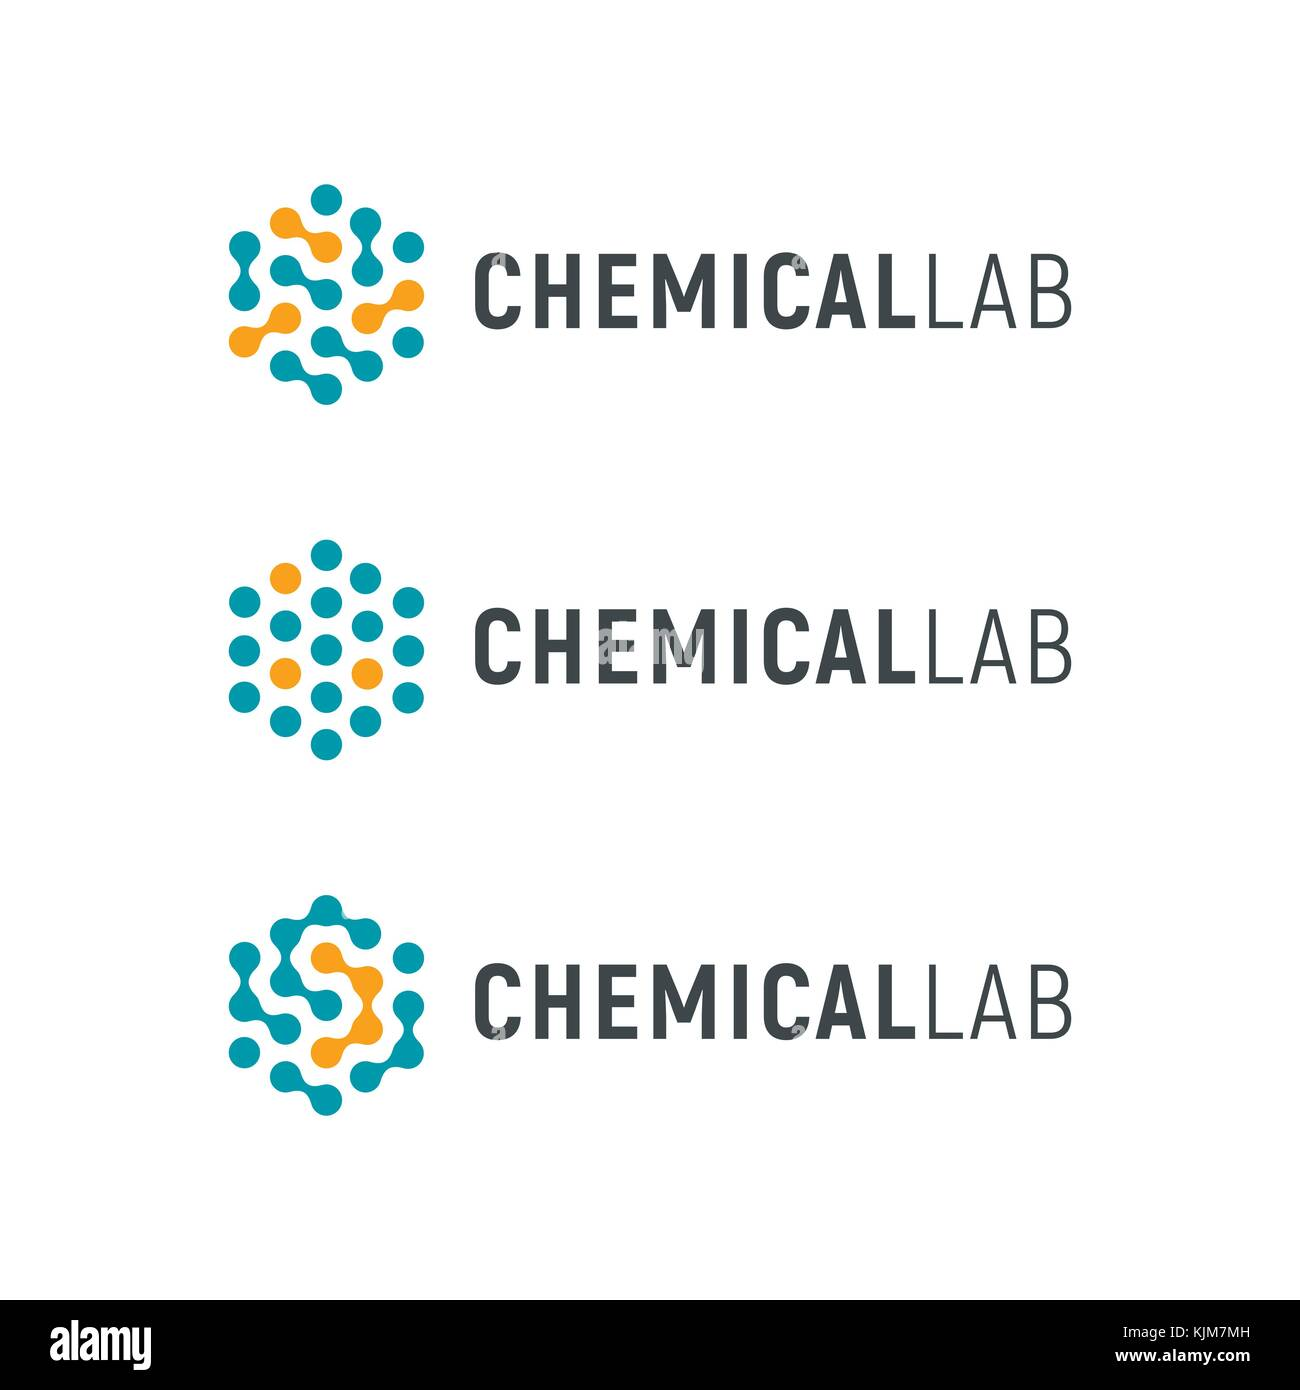 Chemical lab logo template  Abstract hexagon vector logotype